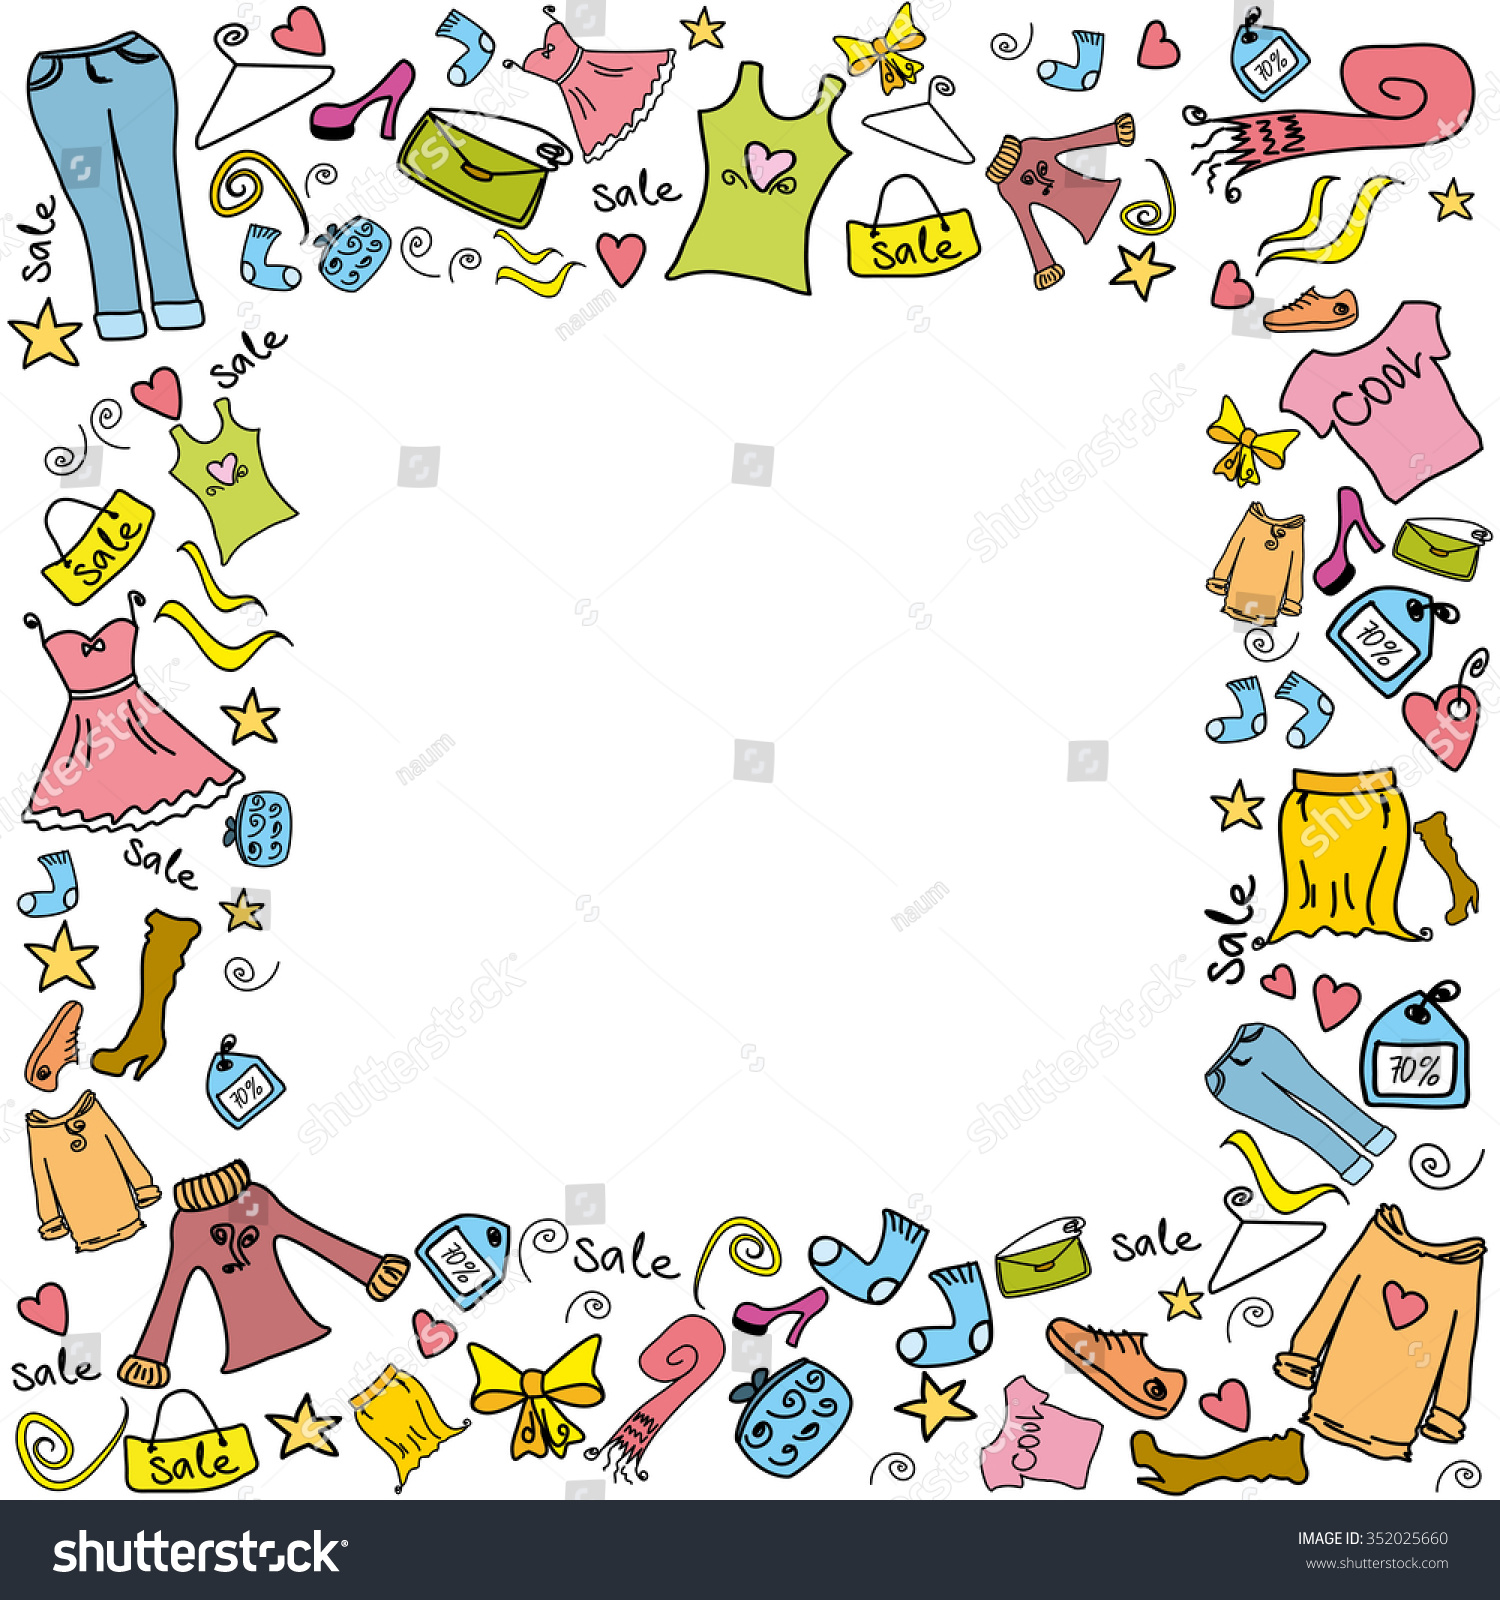 Sale Fashion Shopping Background Frame Clothes Stock Vector Royalty Free 352025660